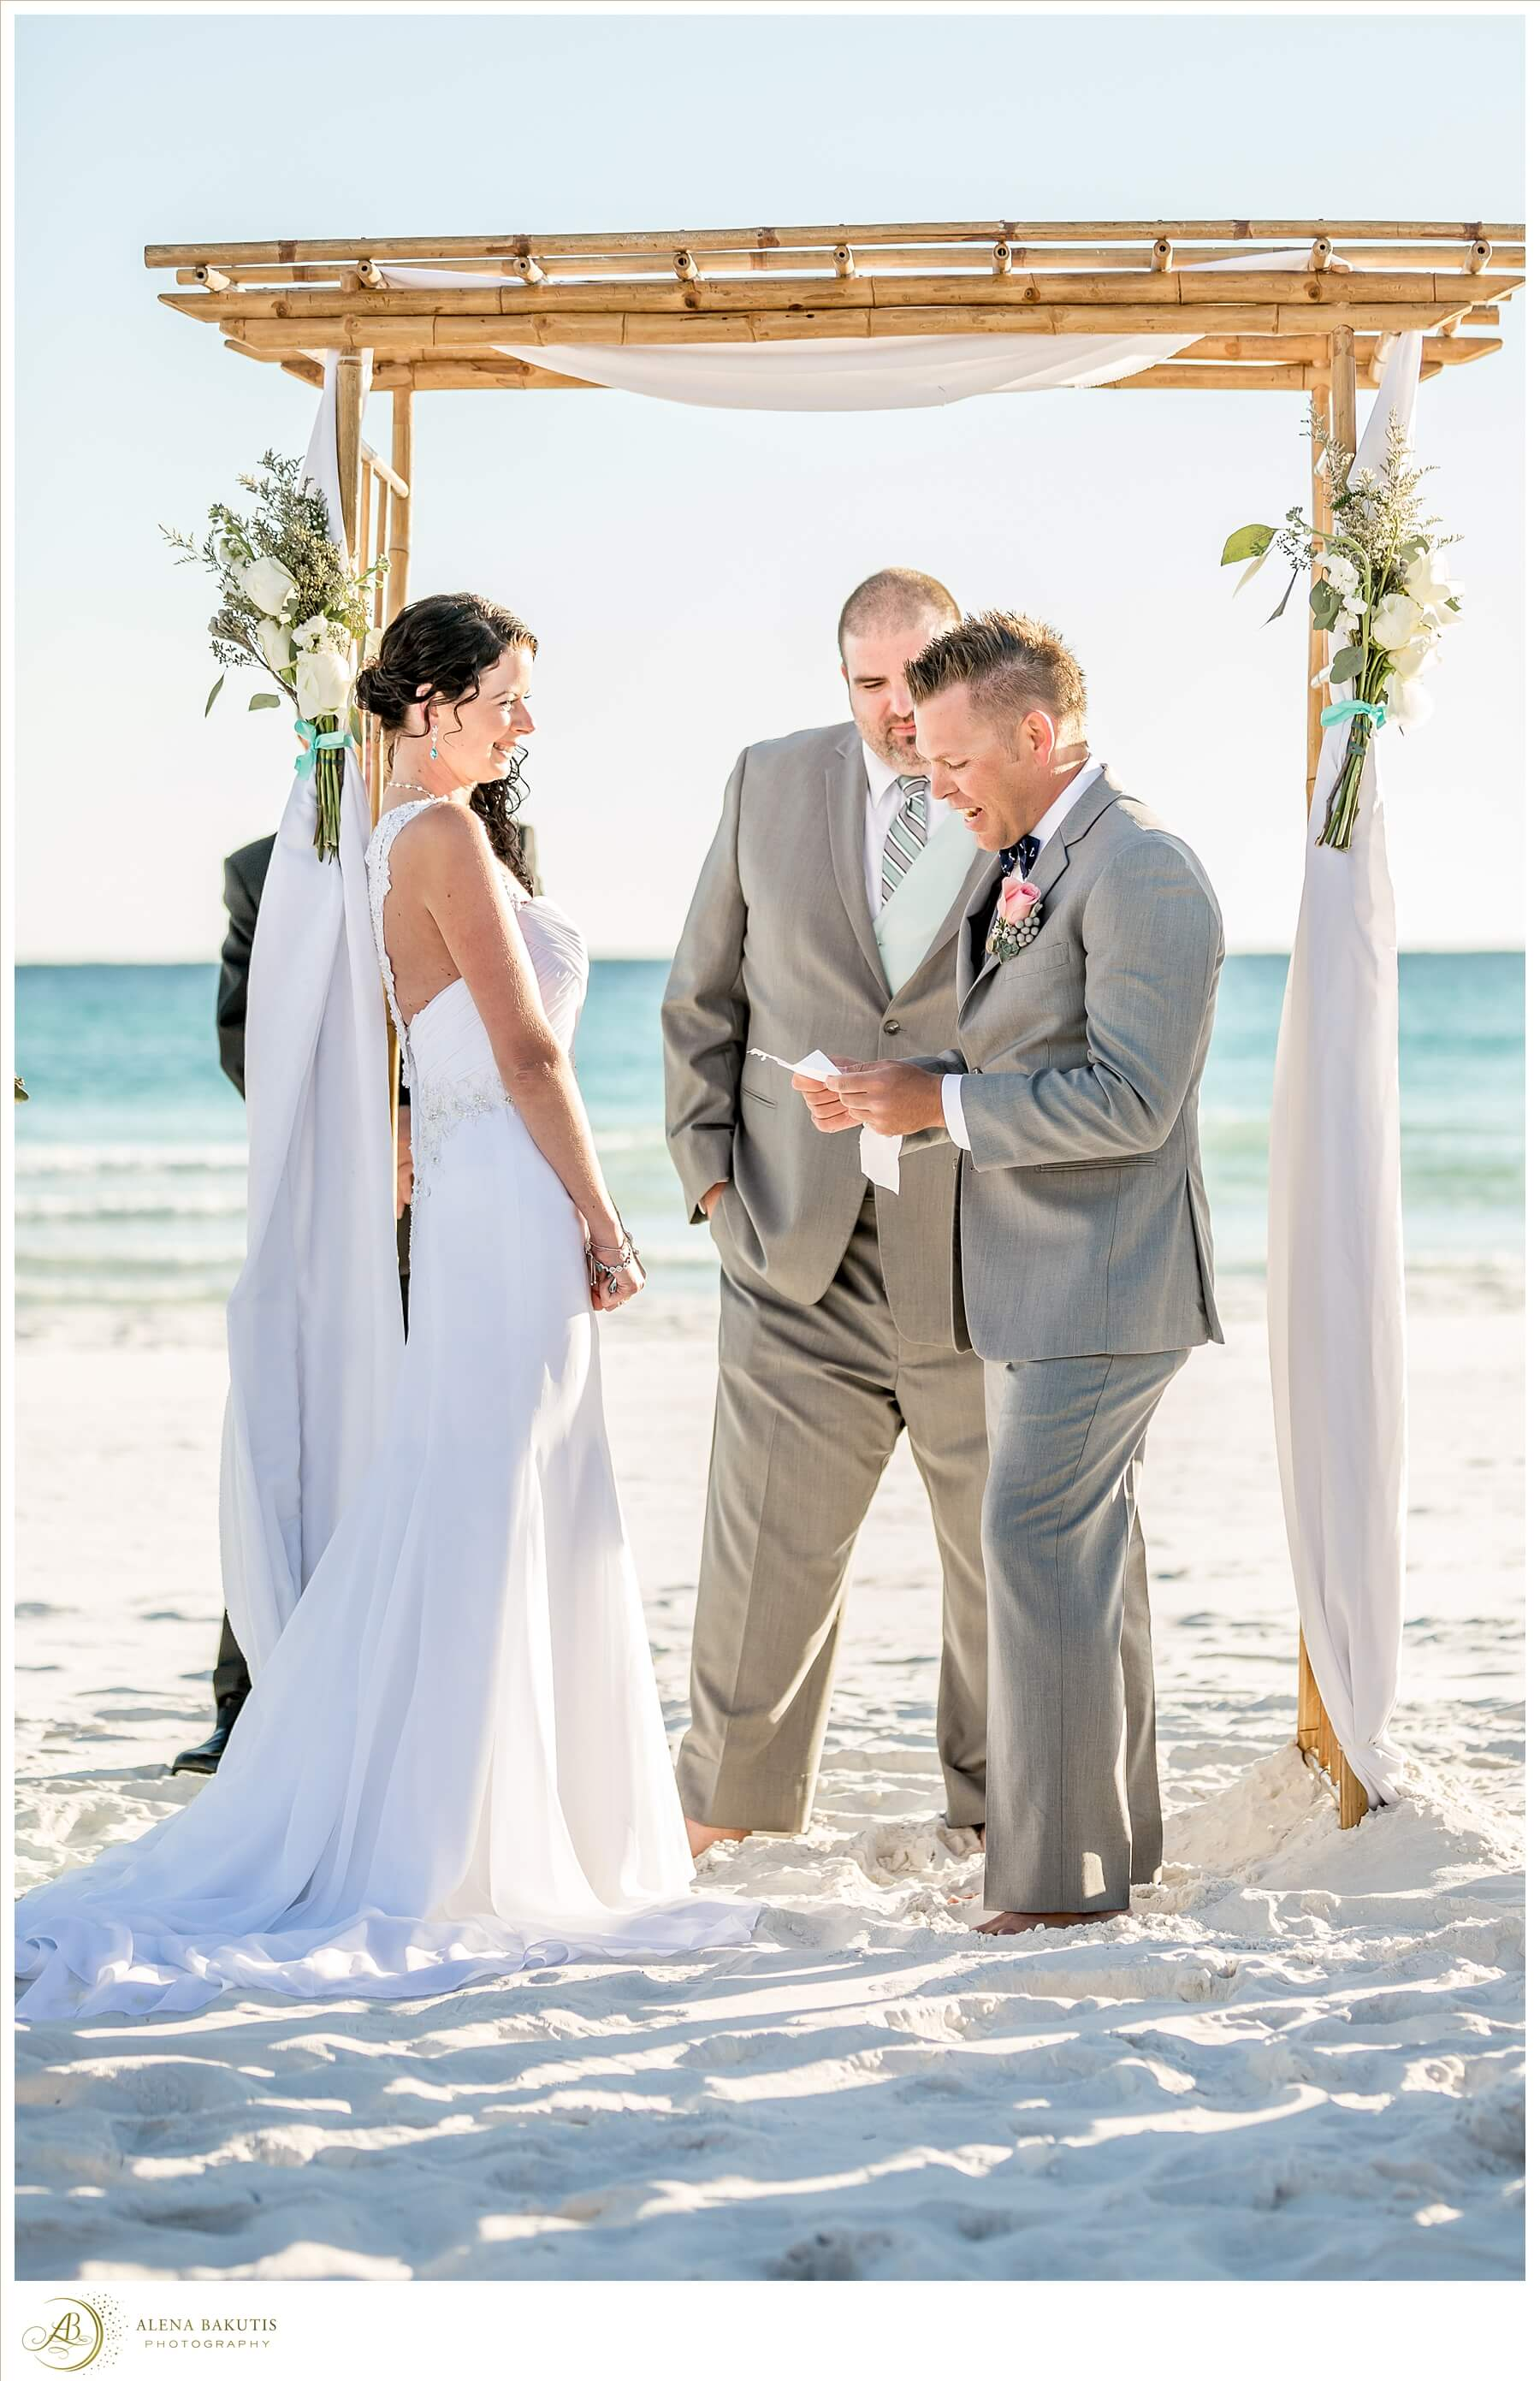 destin beach weddings Alena Bakutis Photography - Amber Brandon-391_WEB